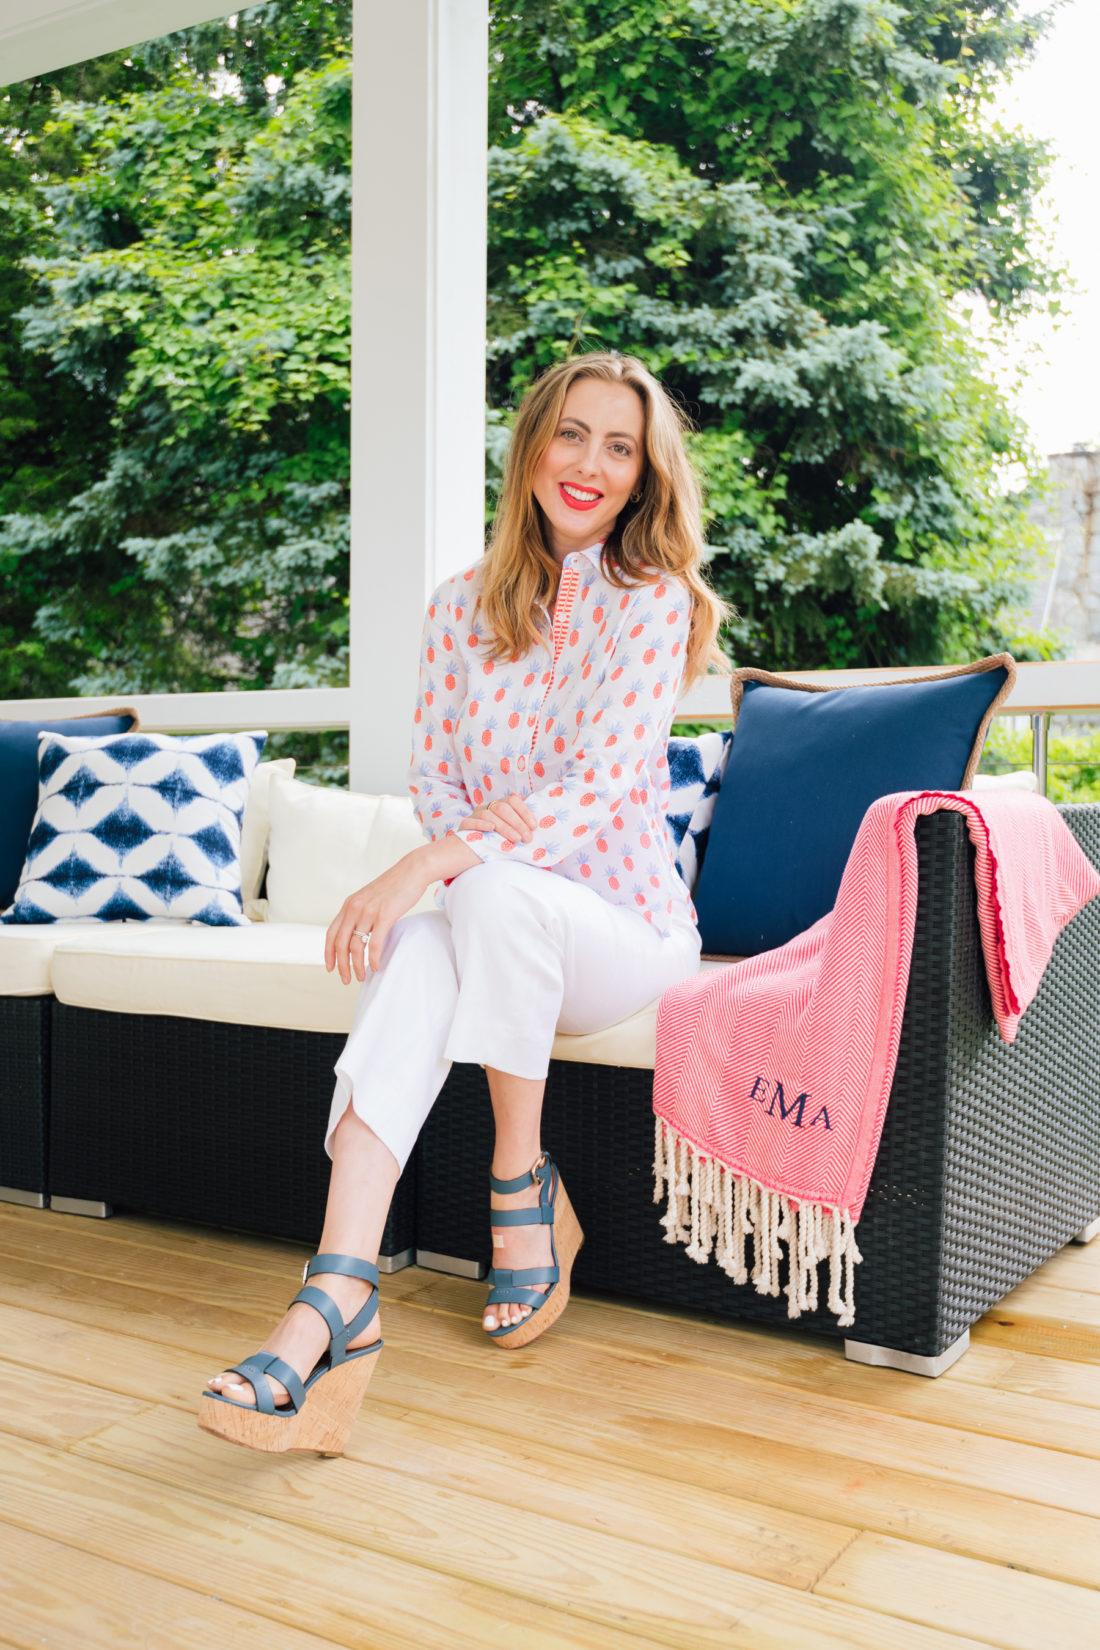 Eva Amurri Martino hangs out on the couch at her summer clambake